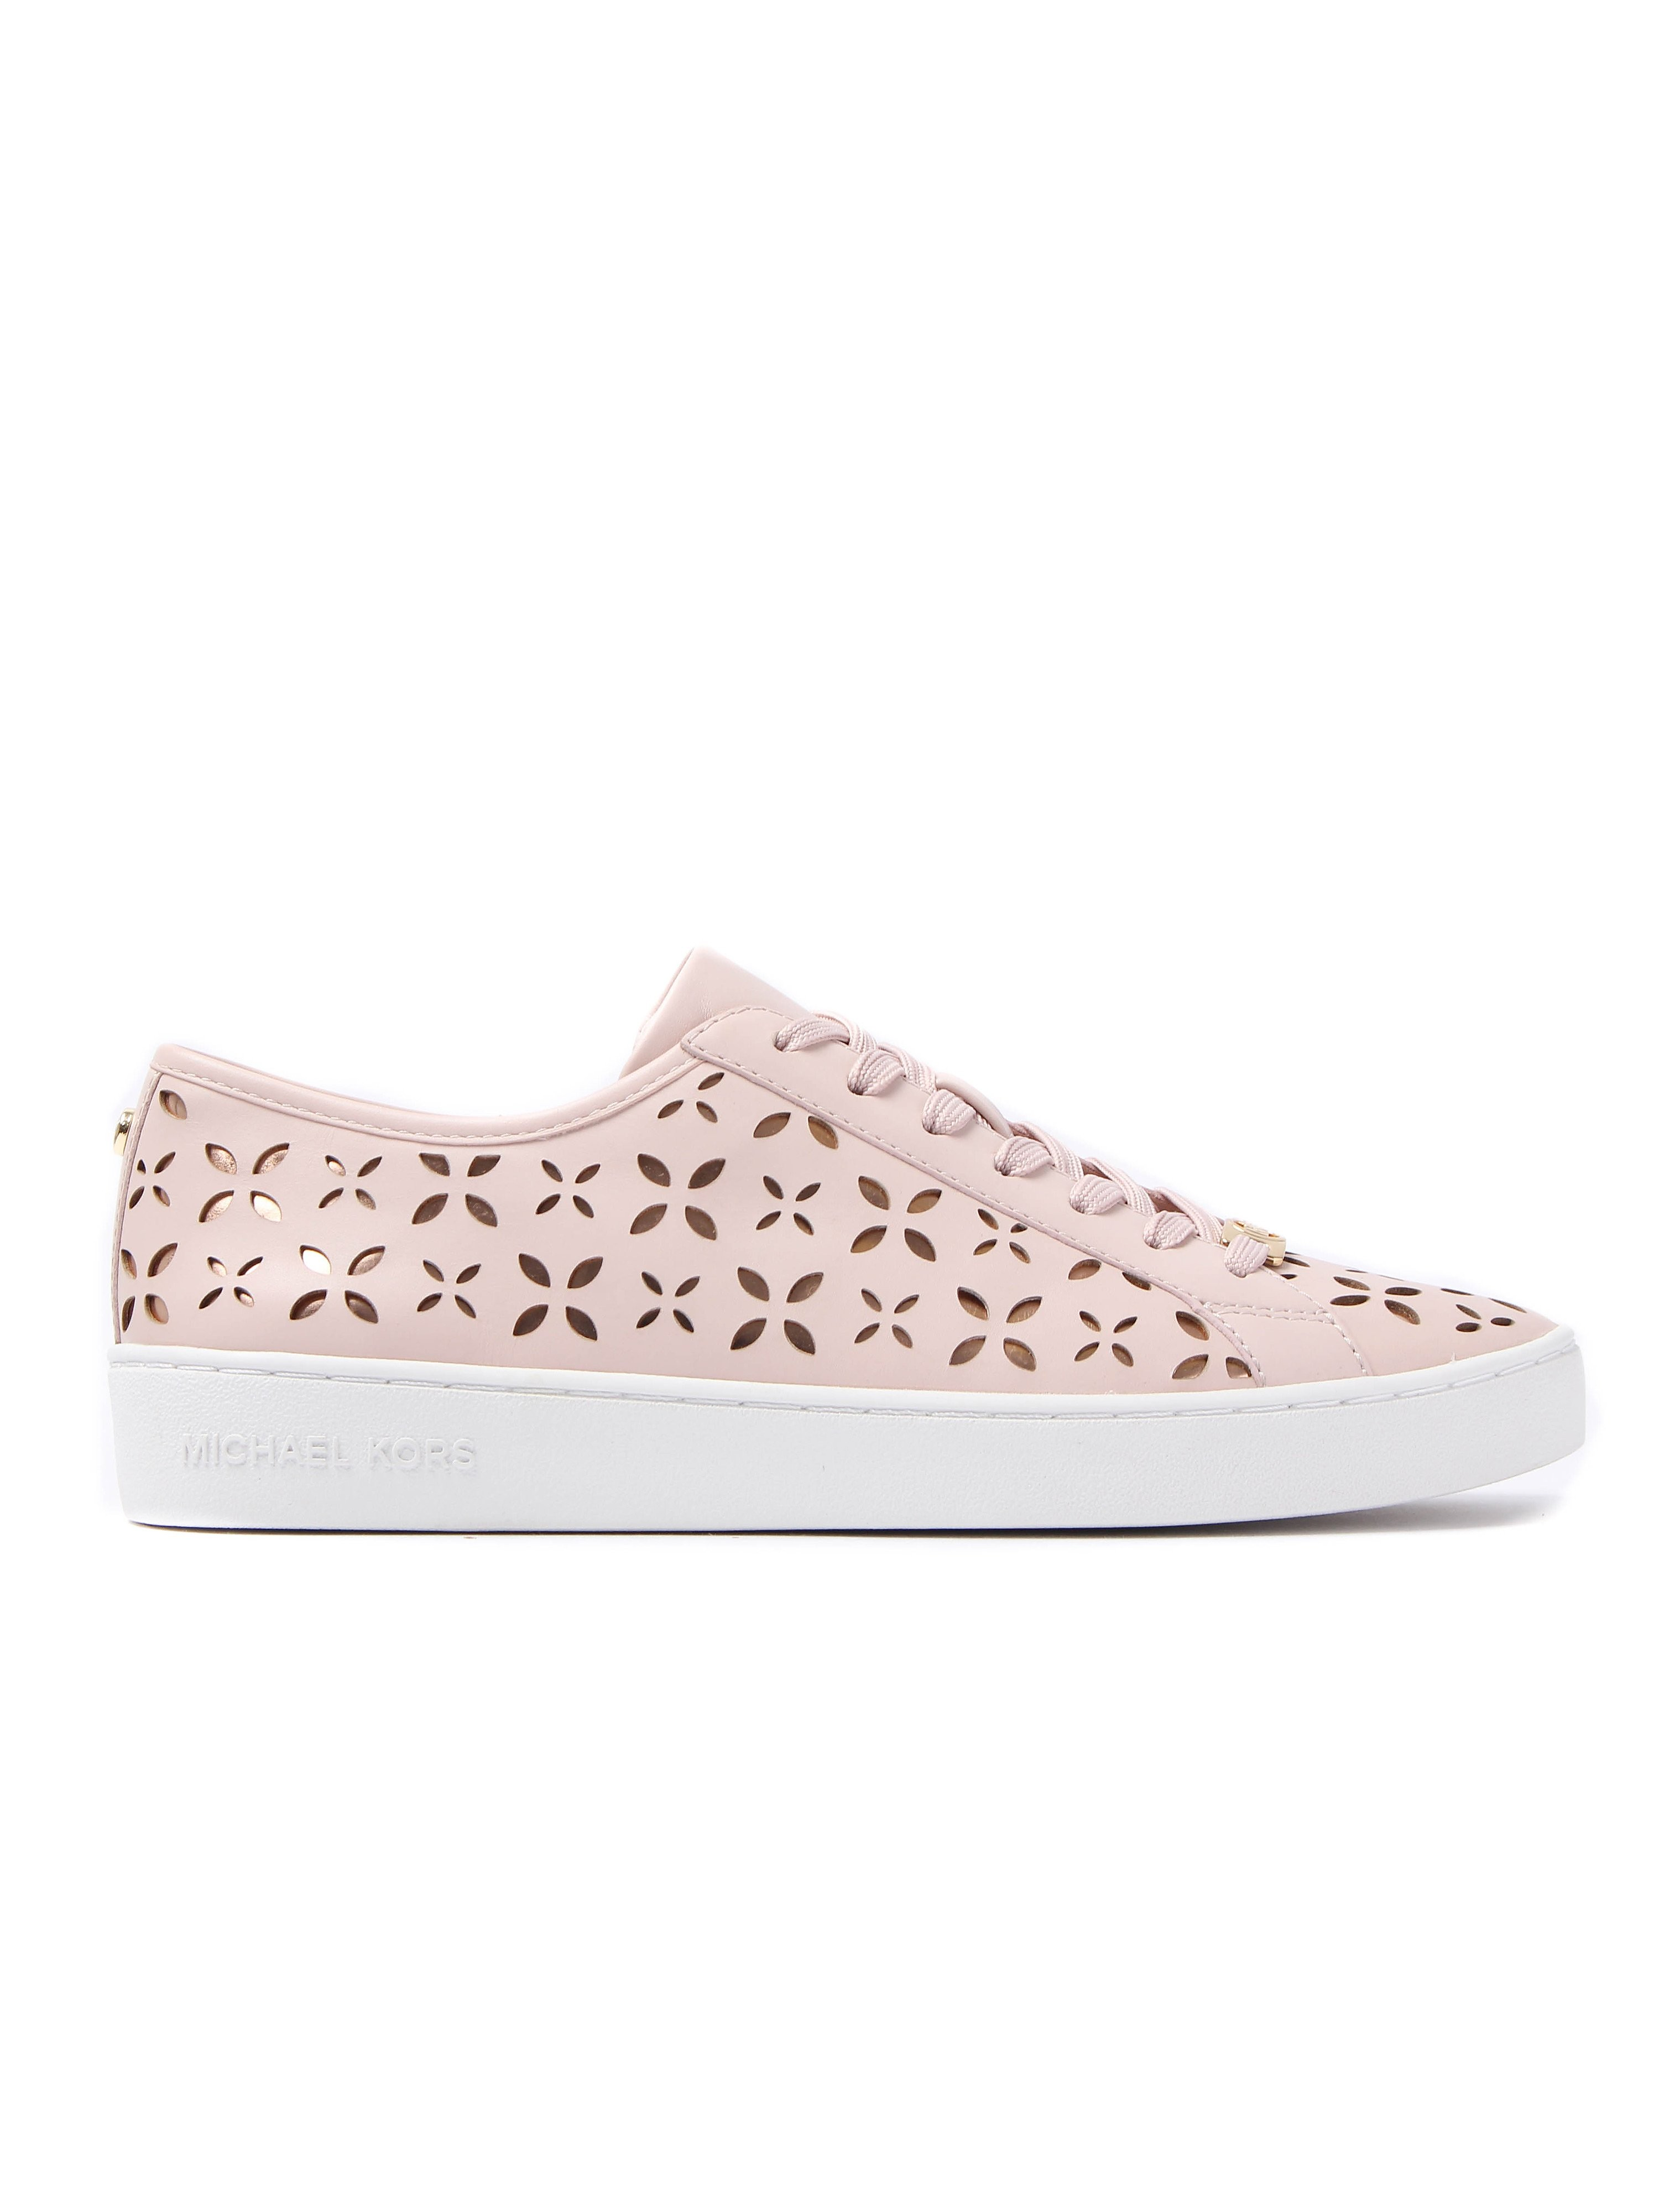 MICHAEL Michael Kors Women's Keaton Lasered Leather Trainers - Soft Pink